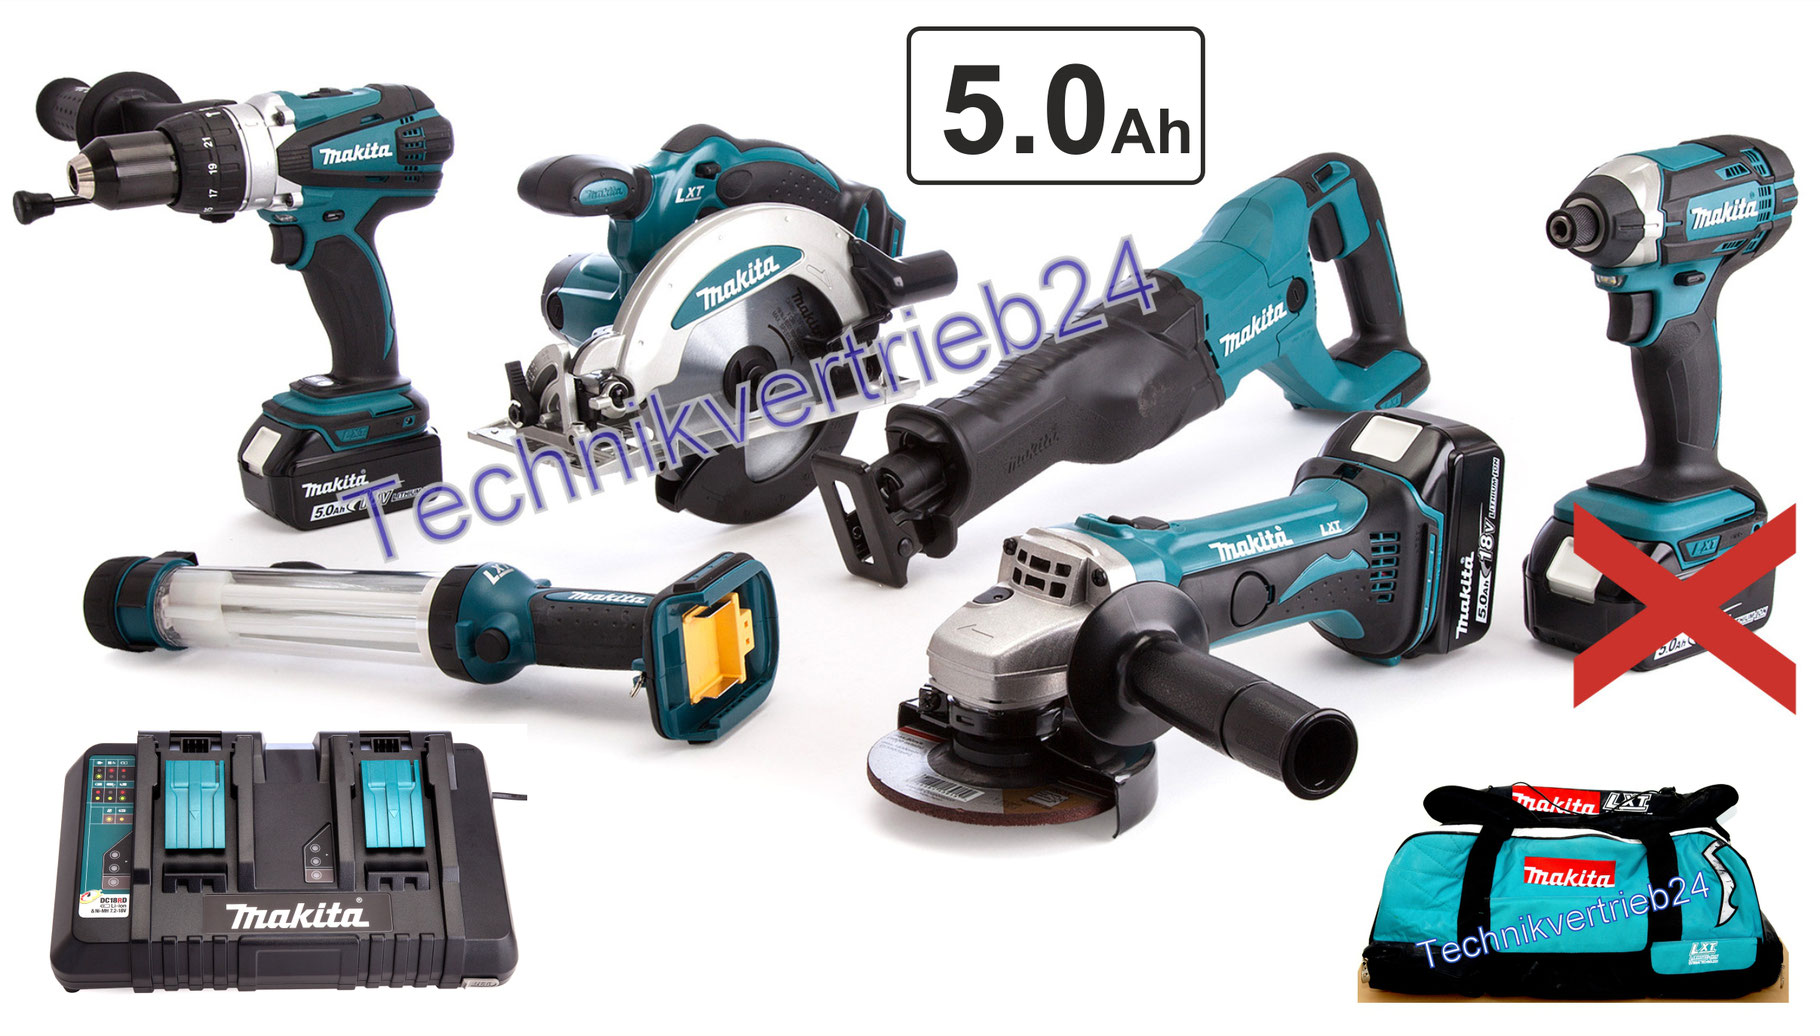 makita 6er 18v set mit 2x bl1850b akku u. Black Bedroom Furniture Sets. Home Design Ideas